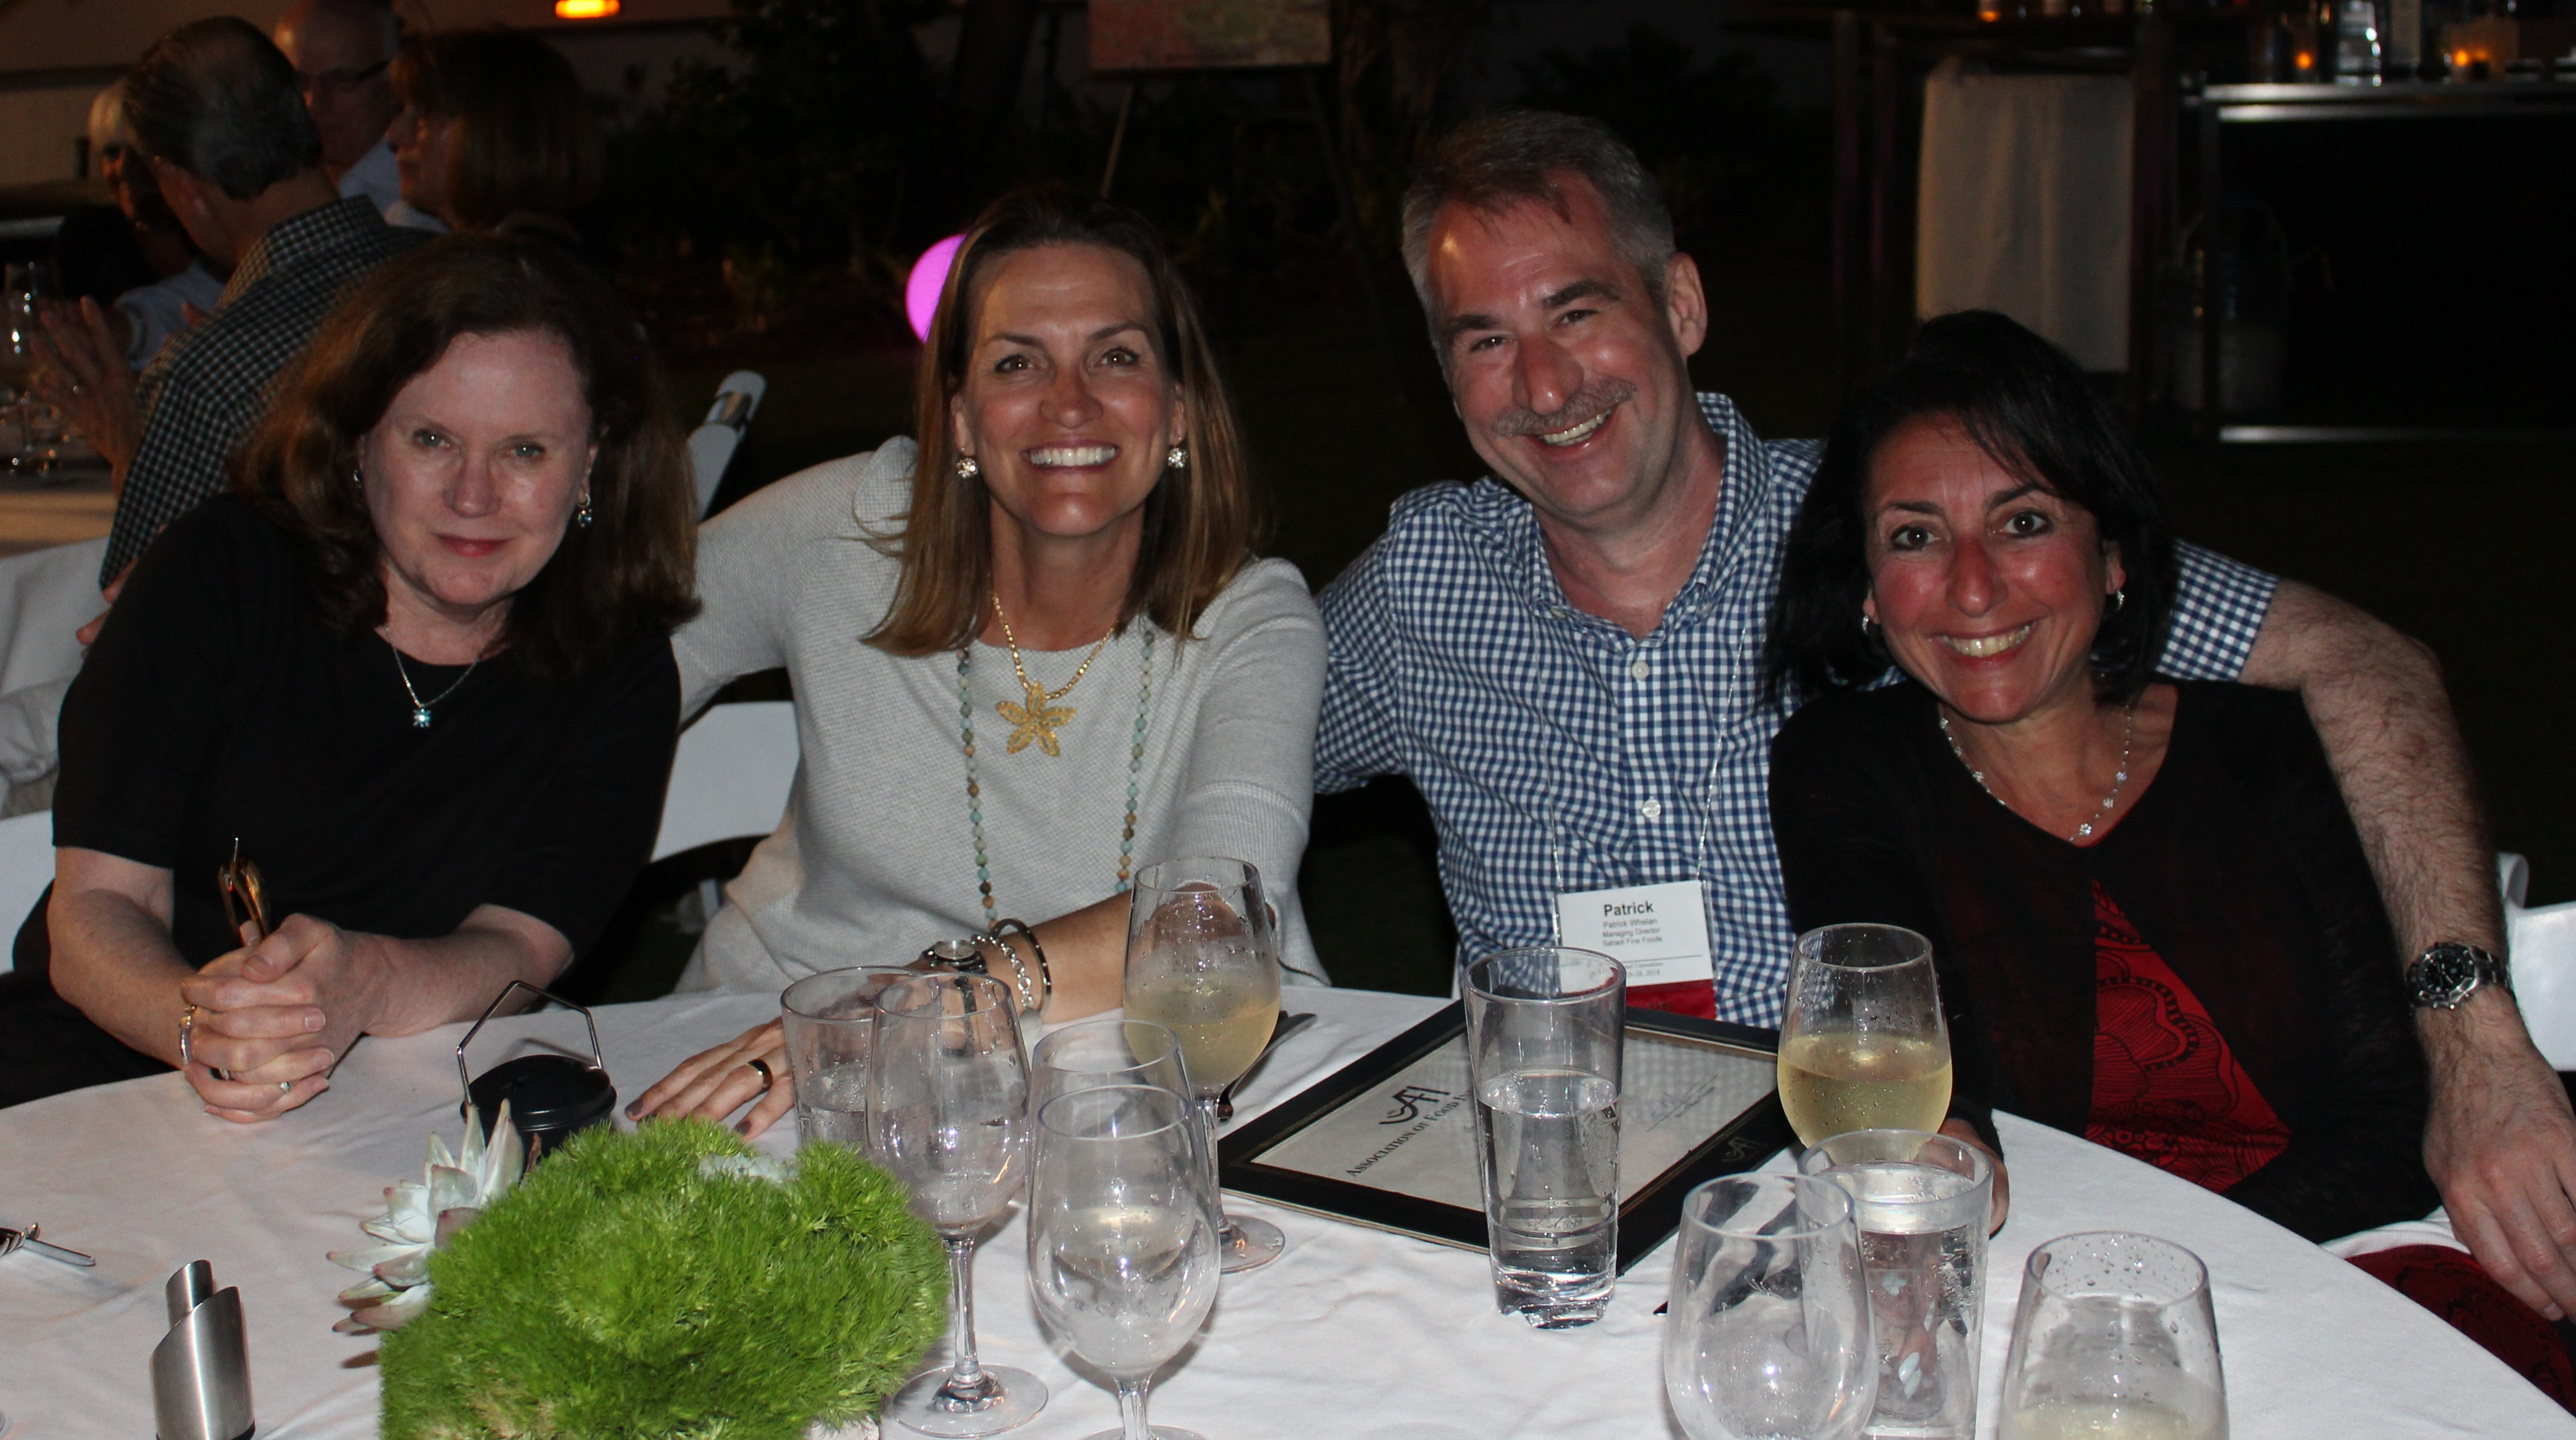 Association of food industries inc home pictures from the 2018 afi annual convention held at nobu miami beach fl m4hsunfo